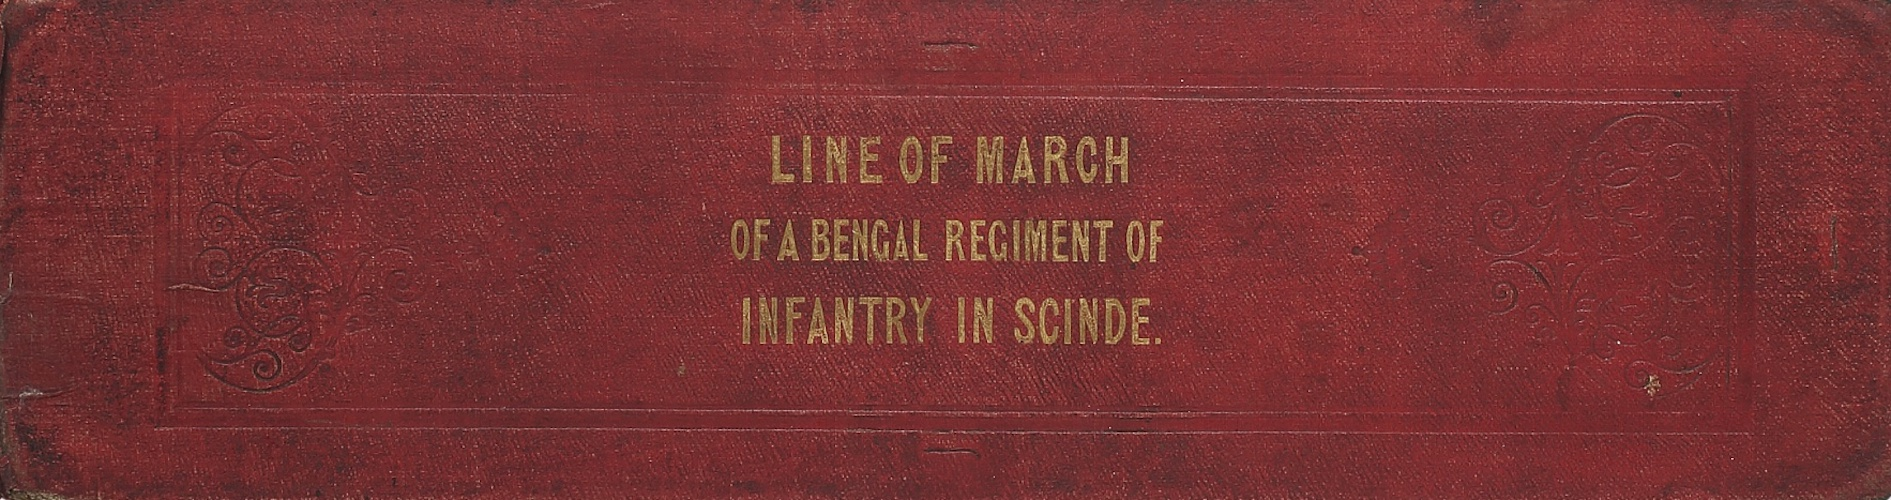 English - Line of March of a Bengal Regiment of Infantry